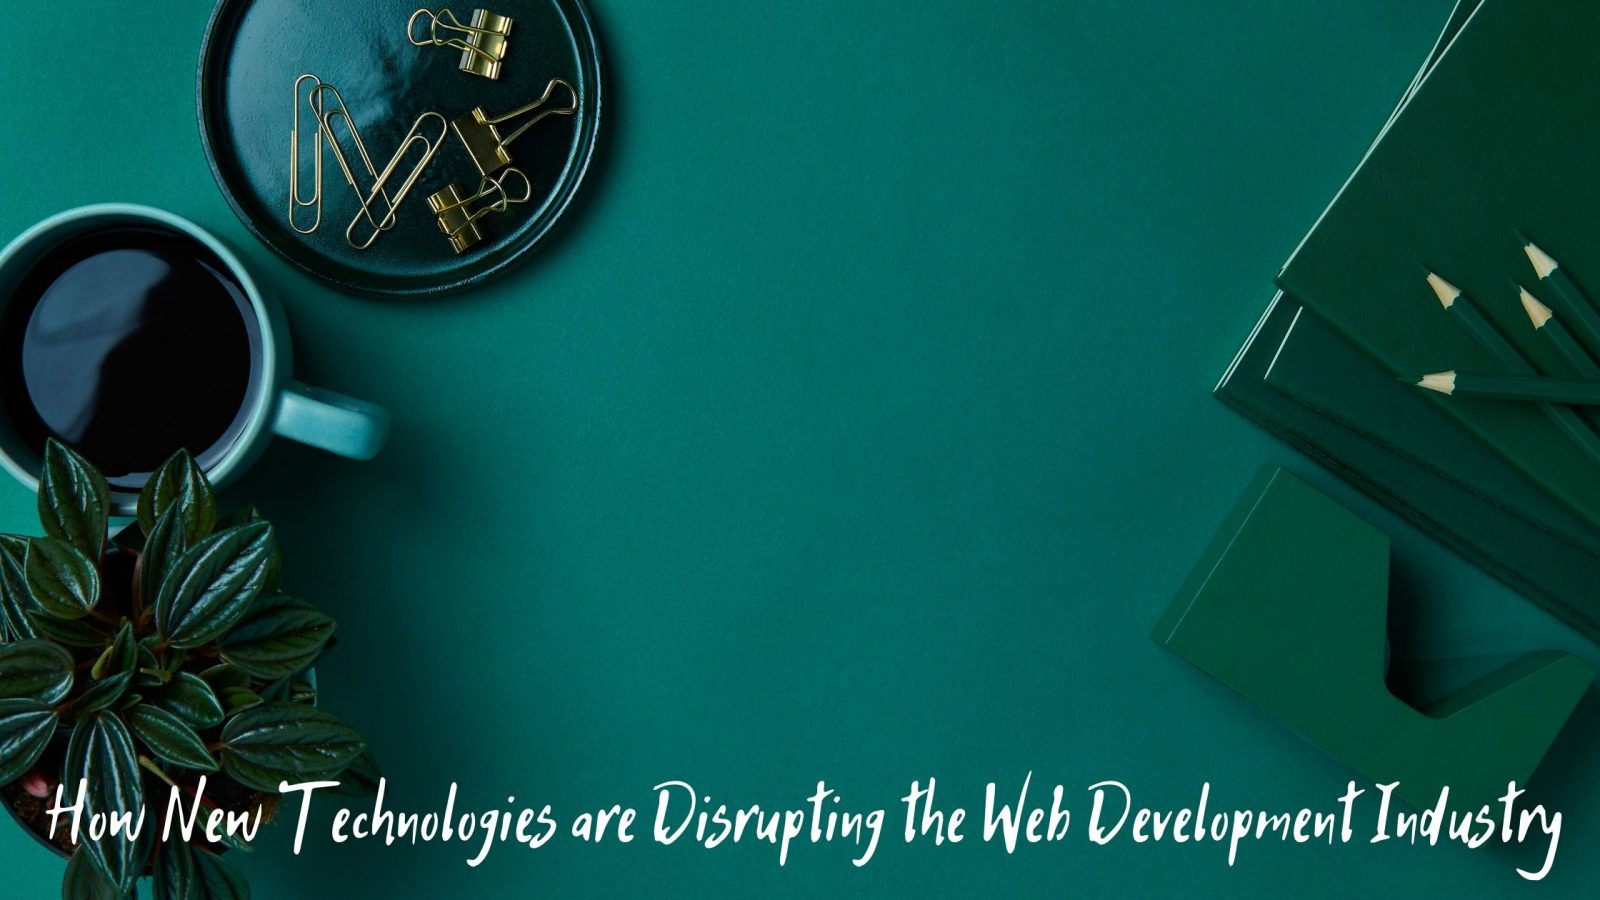 How New Technologies are Disrupting the Web Development Industry